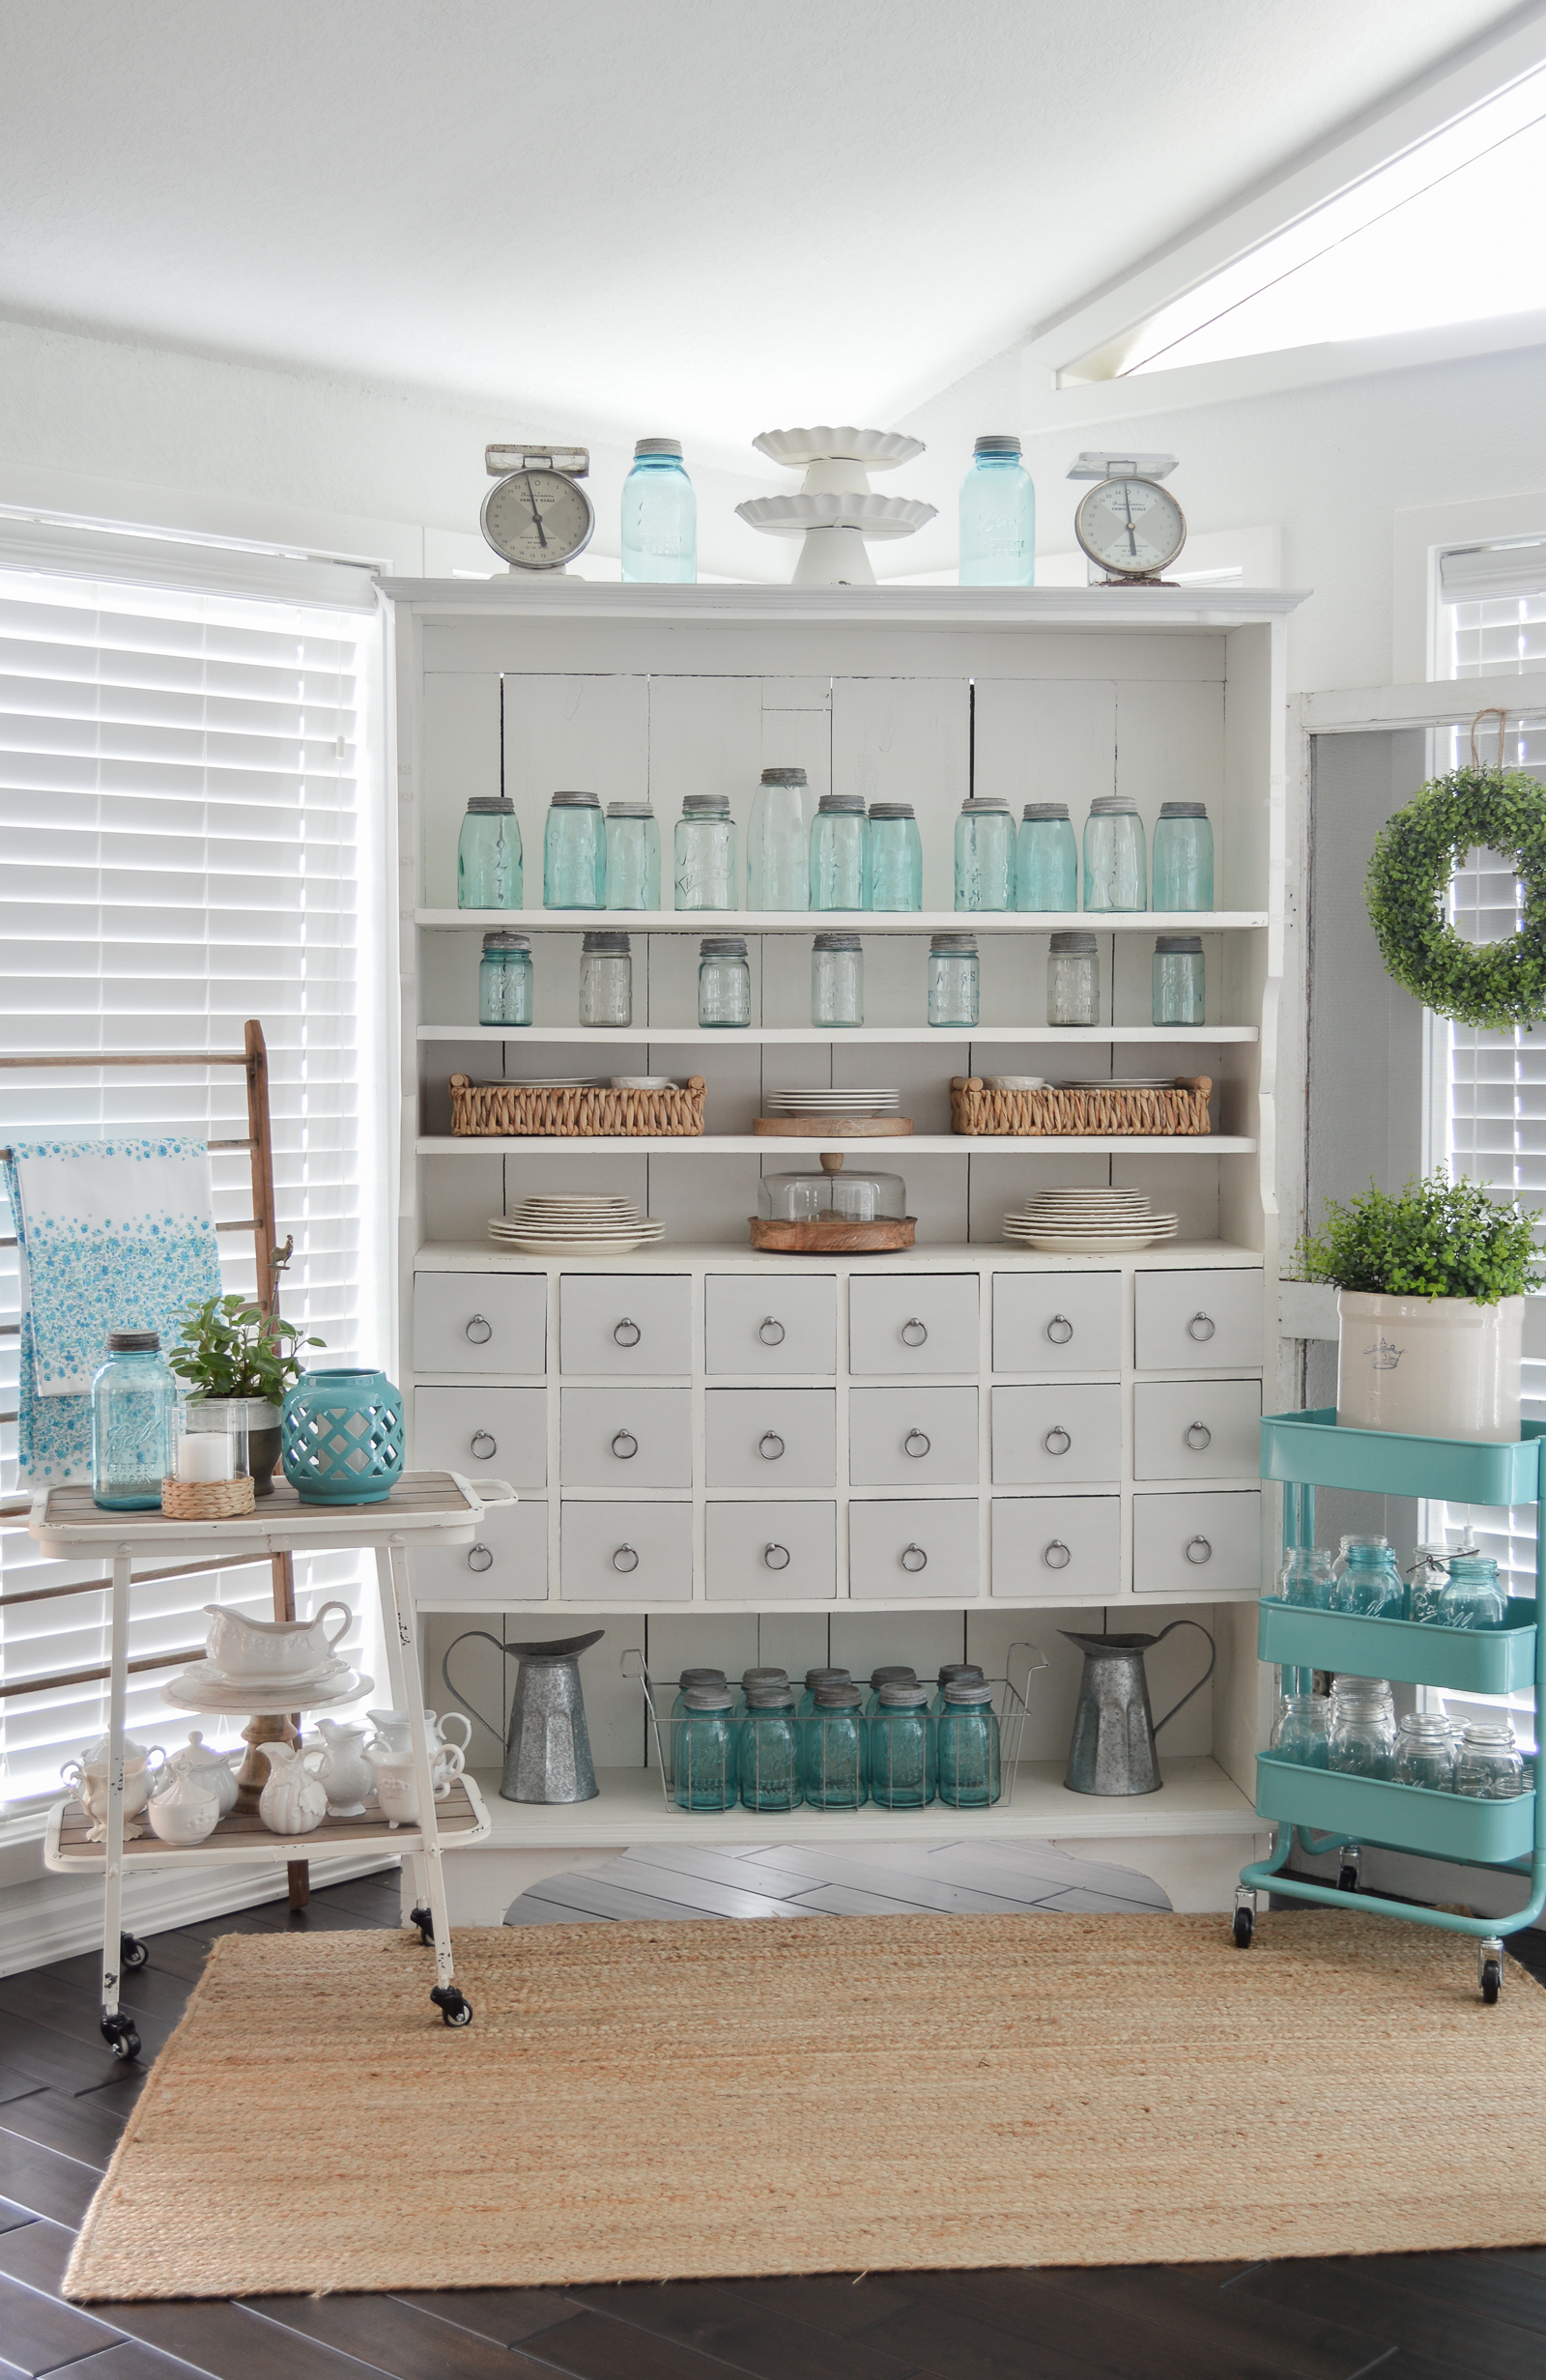 Farmhouse Style Decorating with Color - Fox Hollow Cottage